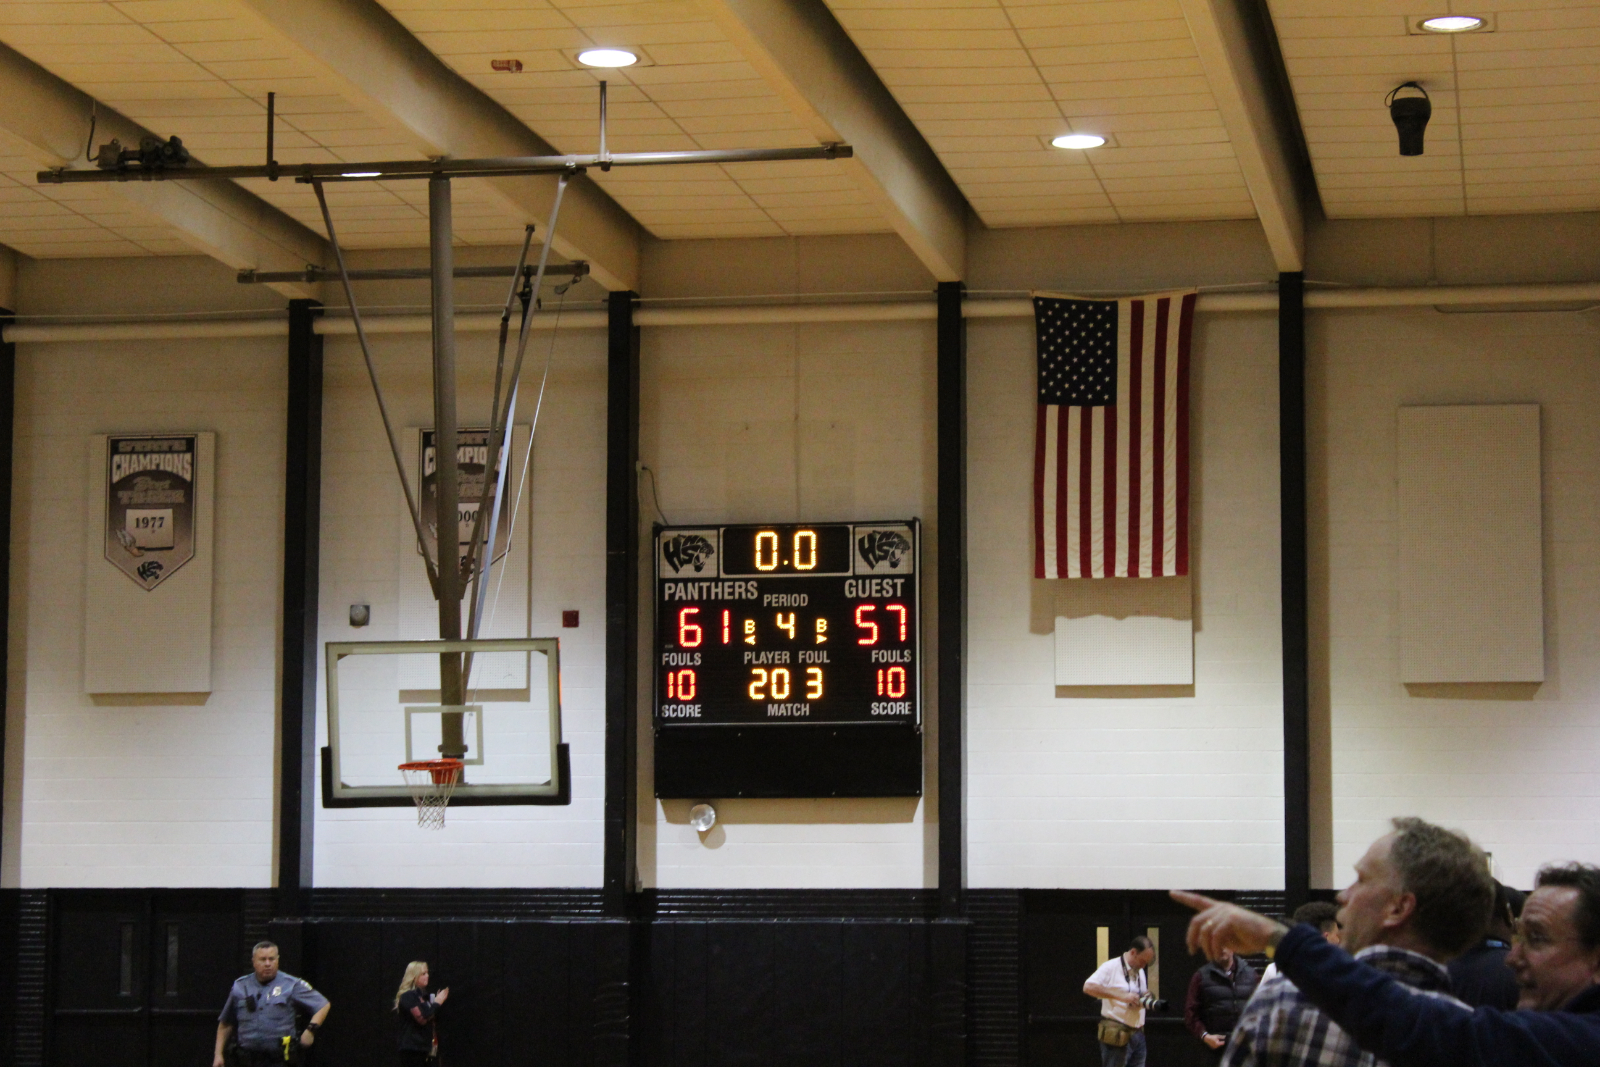 Panthers Win to Advance to Great Eight